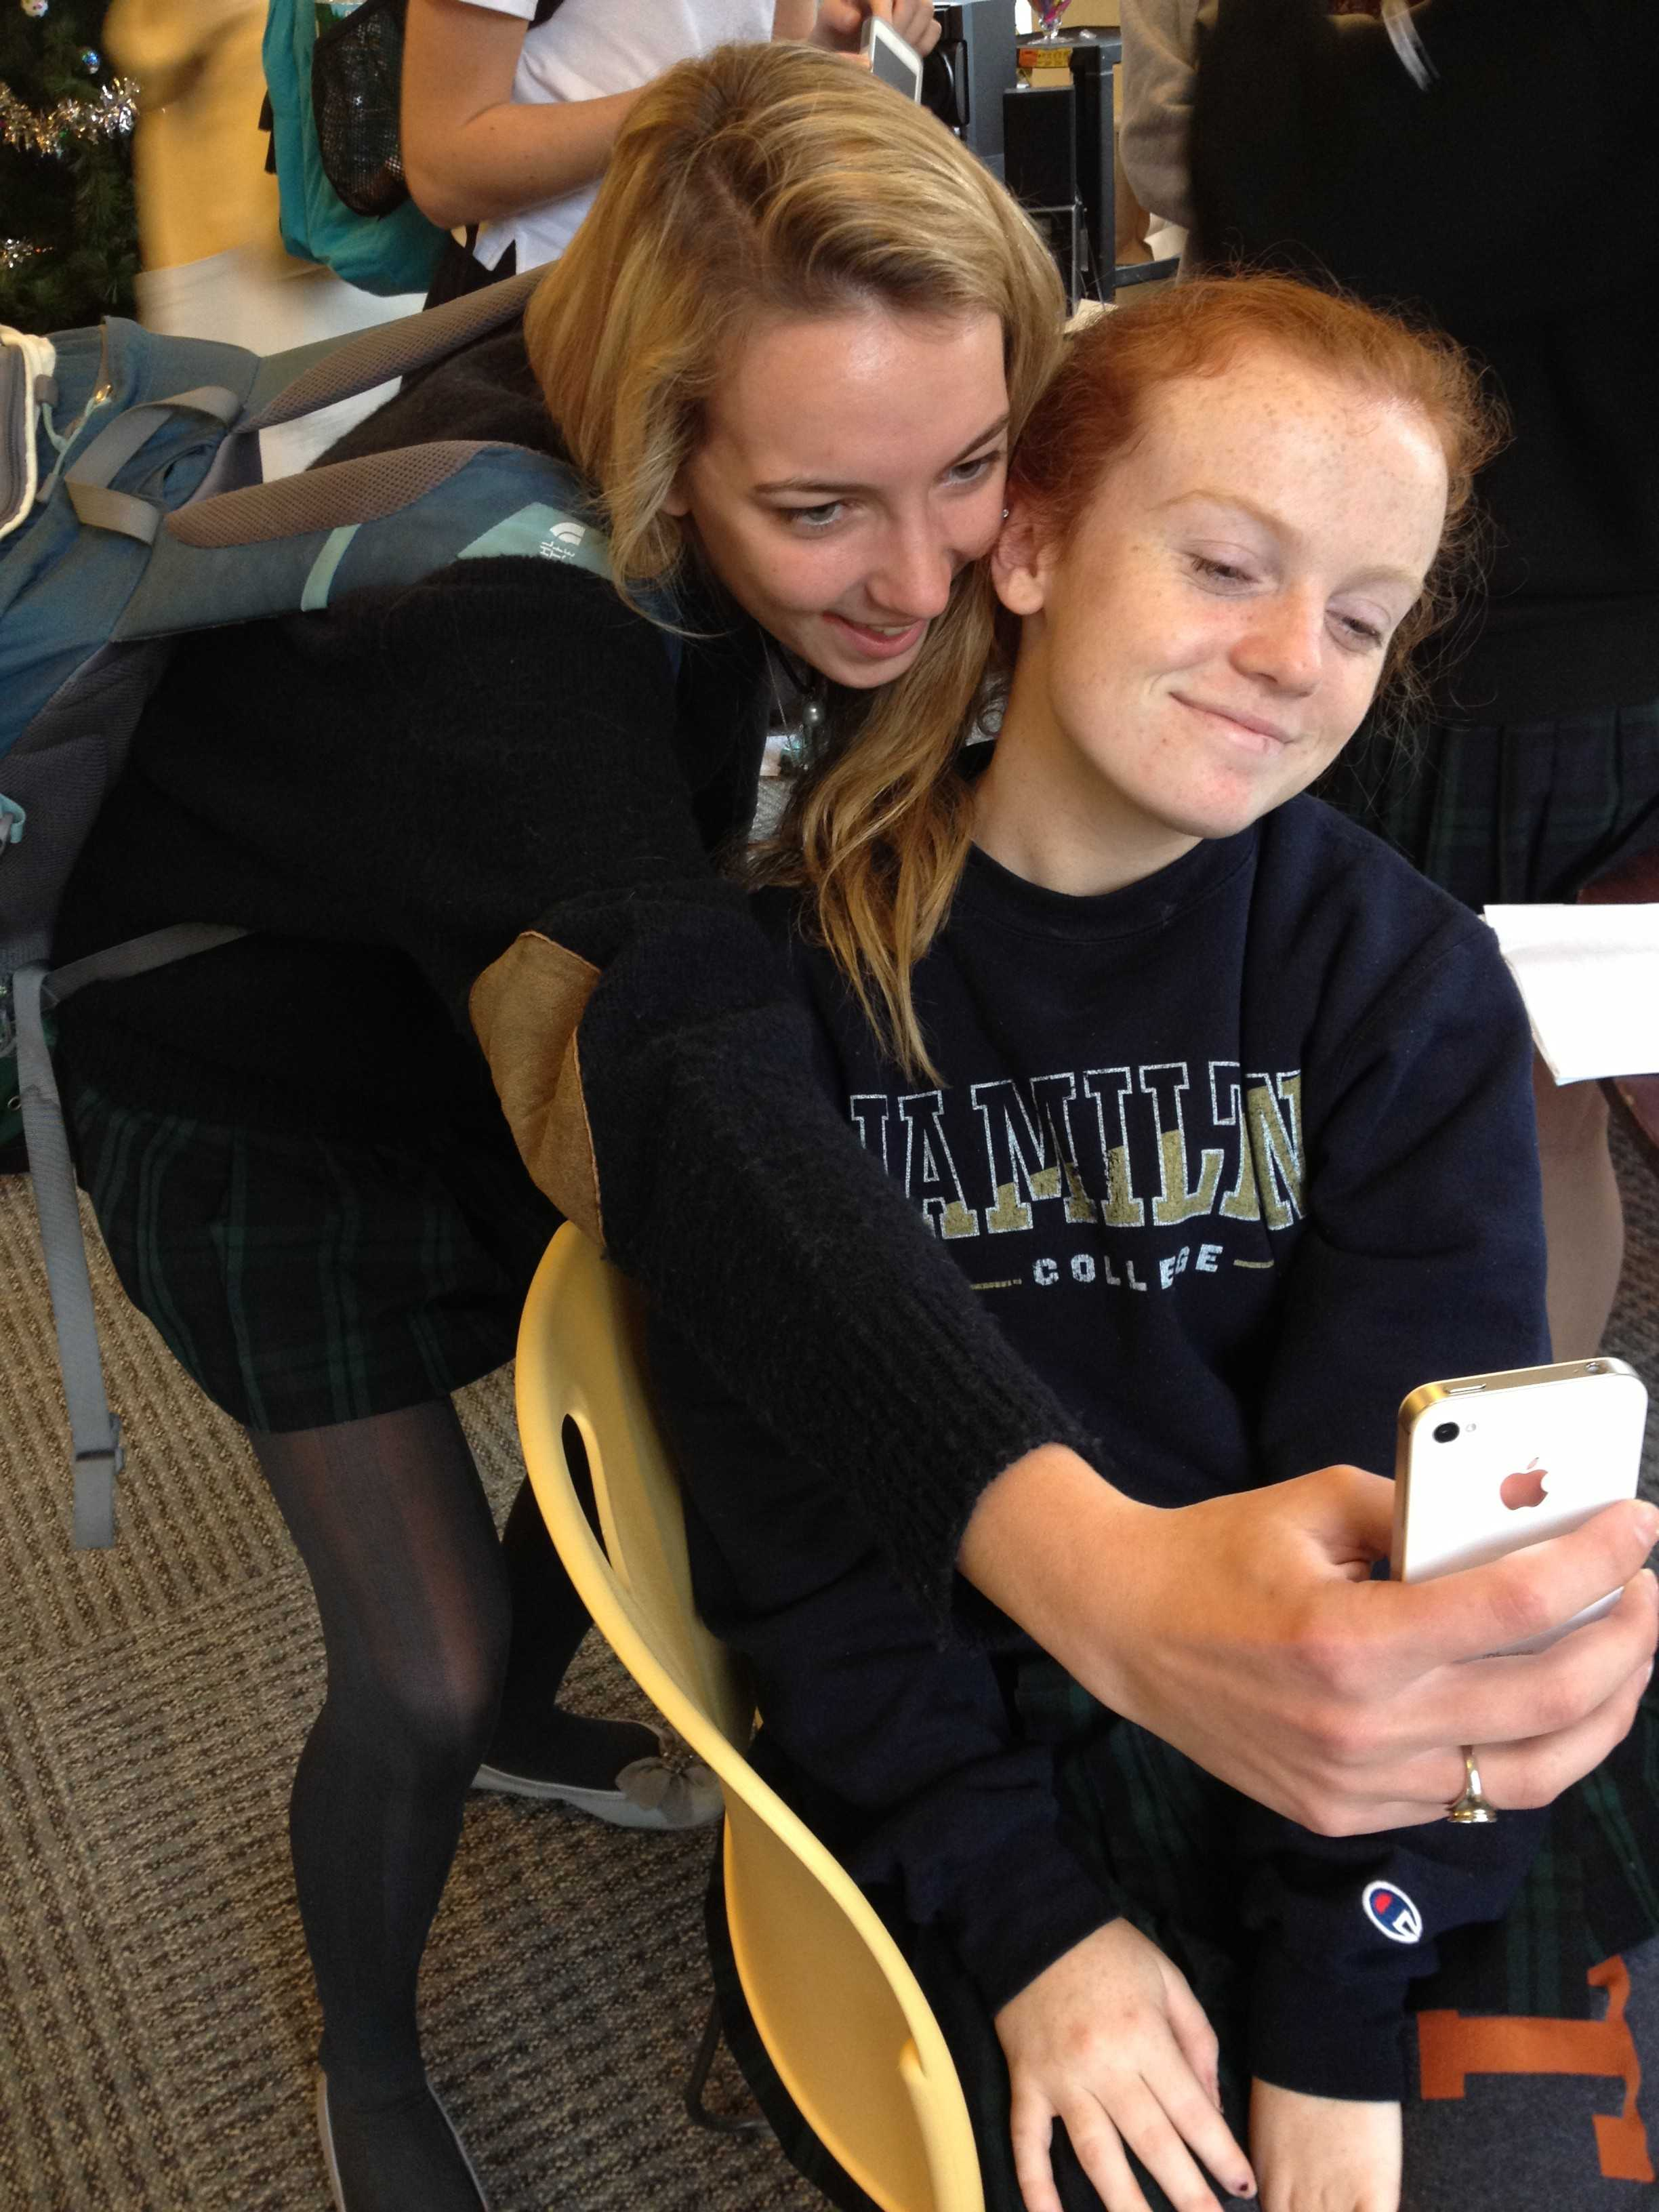 Seniors Marguerite Sommer and Taylor Ryan make silly faces for a Snapchat photo, as many teenagers today do. Allie Kenny 13